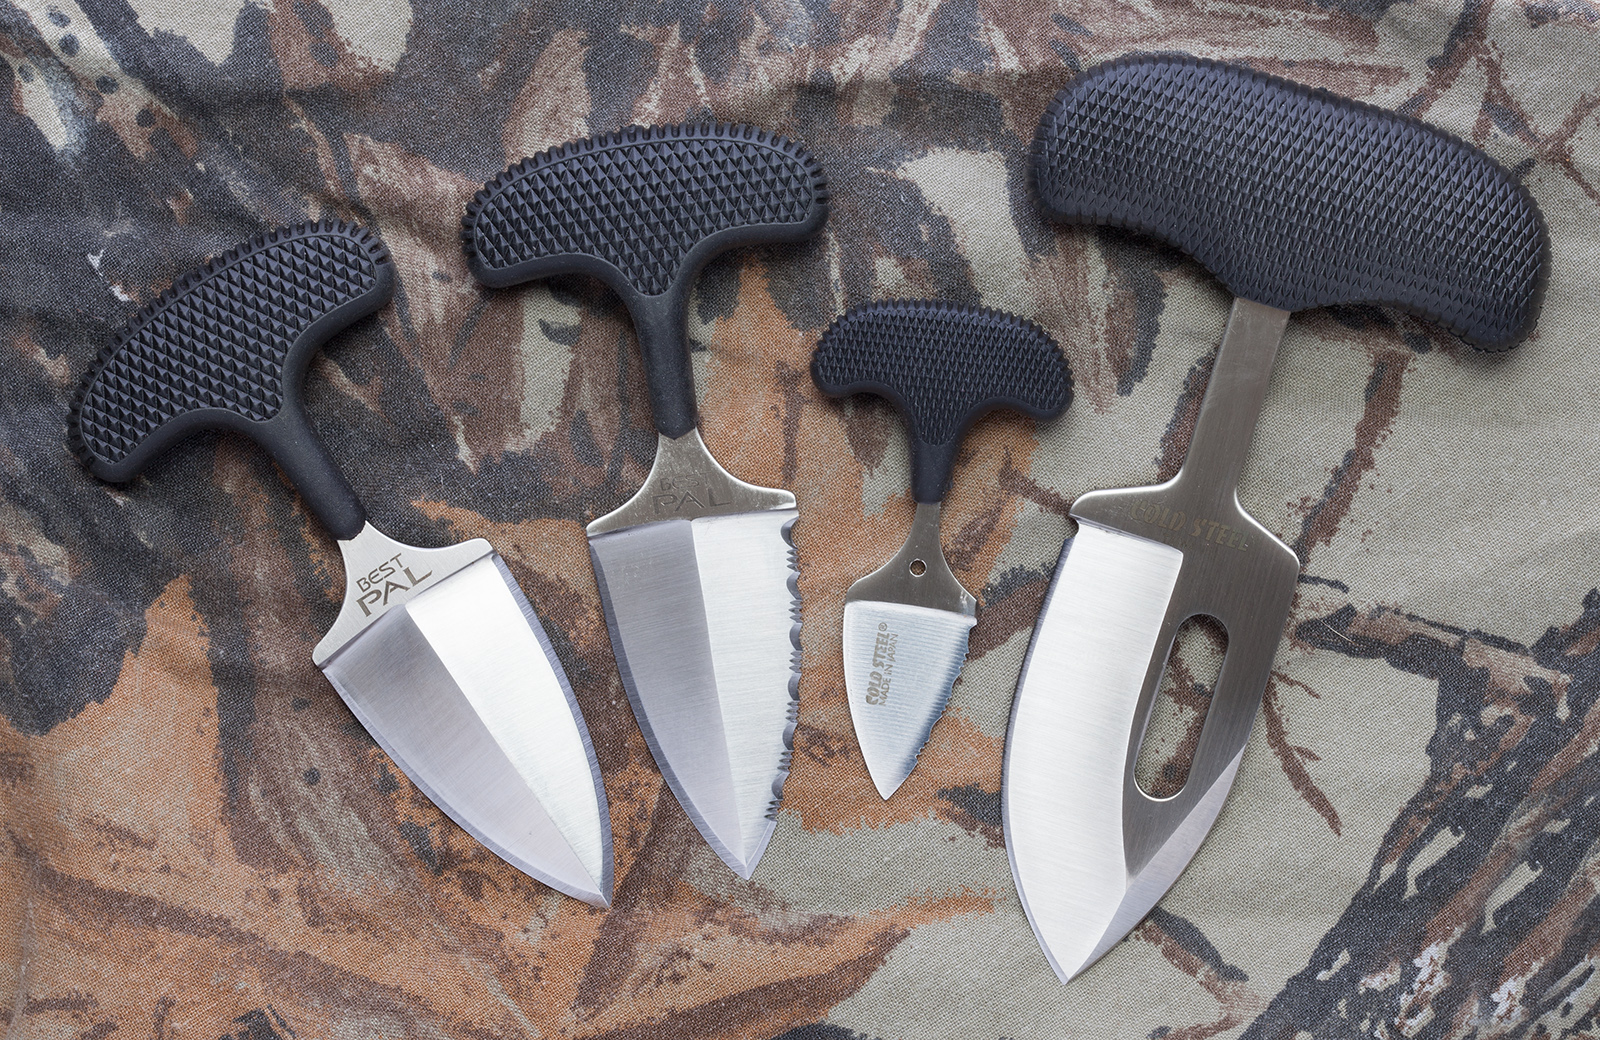 Review: Cold Steel Push Knives